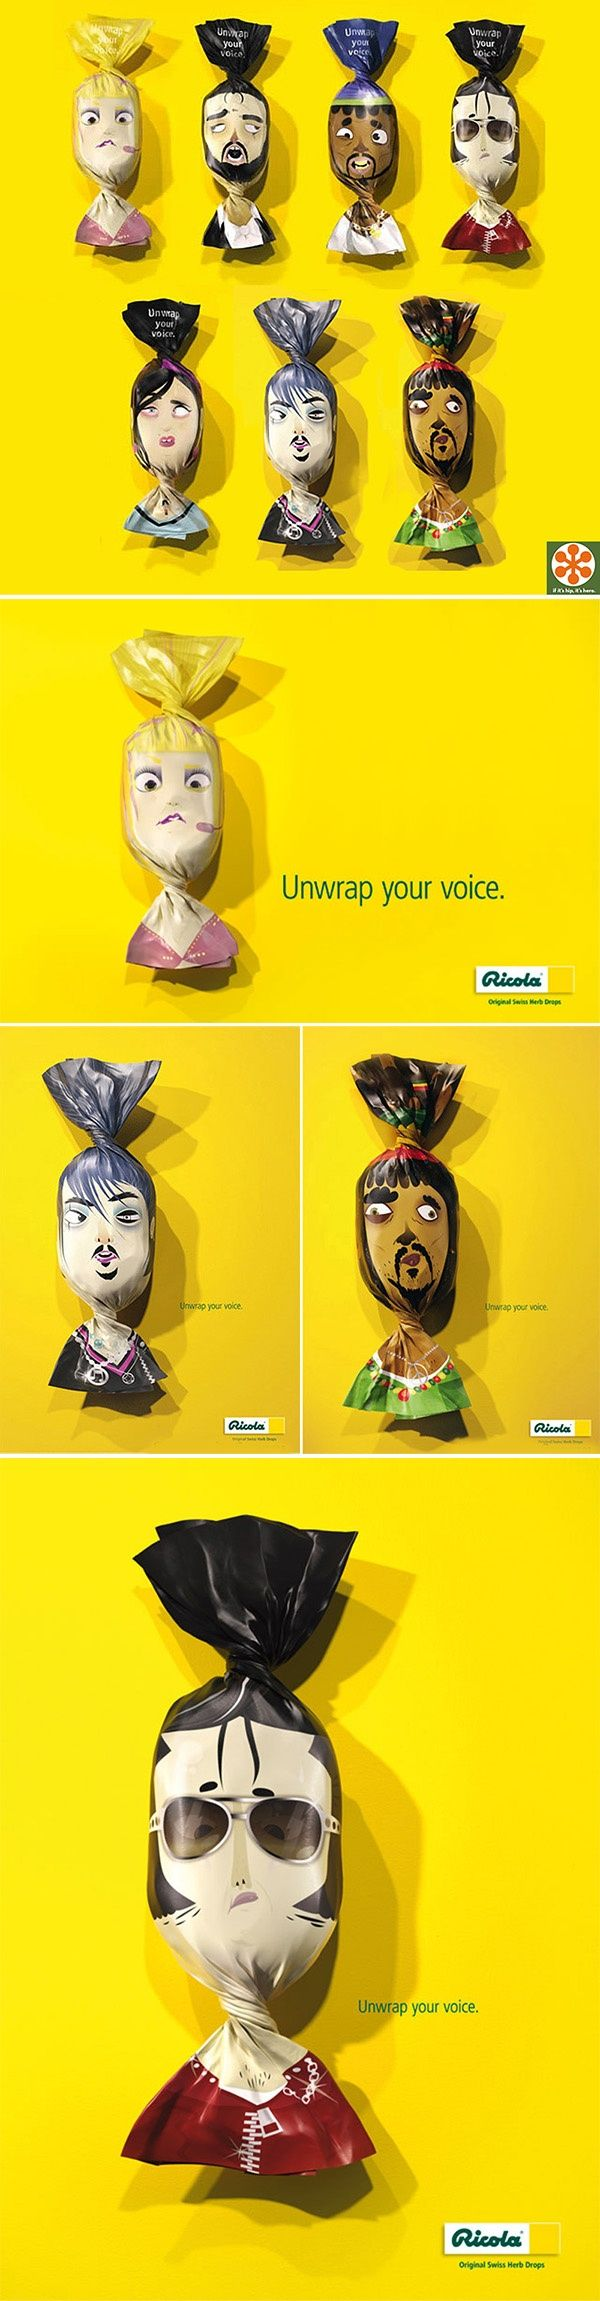 """Ricola's """"Unwrap Your Voice"""" Packaging, Ad Campaign and Full Credits http://www.geniuzz.com/c/graficos-diseno/?trackid=130"""